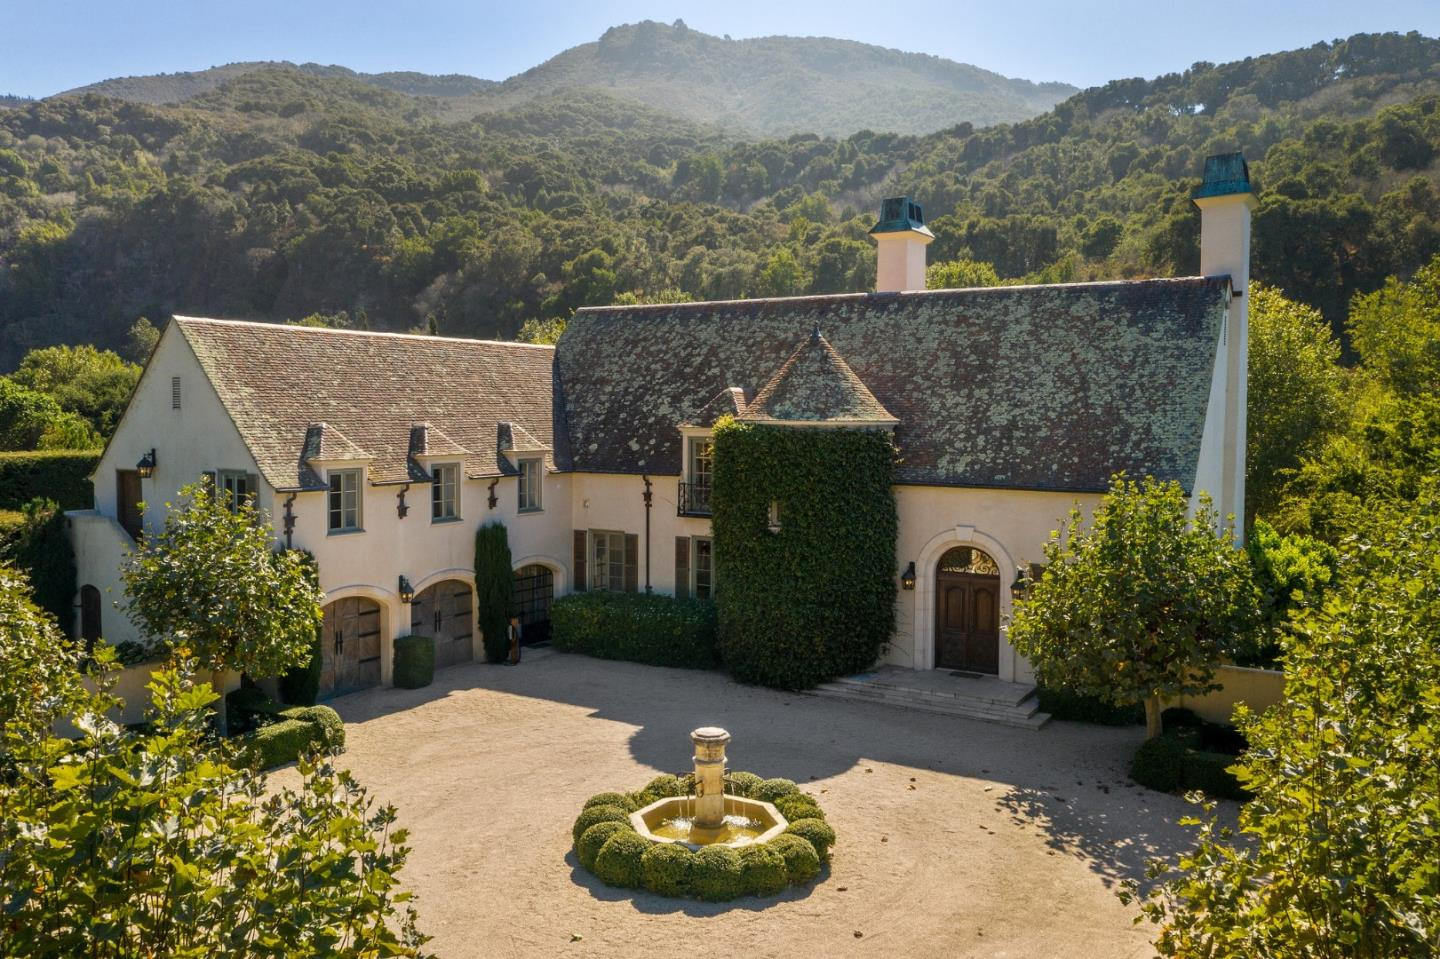 Stunning private estate on nearly 9 secluded acres that front the picturesque Carmel River. The beautiful French chateau is set behind a 15-foot gated entry ensuring maximum privacy.   The 4-bedroom home offers a dramatic great room with vaulted ceilings soaring two stories high, and is filled with beautiful light all day.  The home's living areas embrace the natural surroundings by means of French doors throughout that open out onto stone terraces and patios that seamlessly lead to the expansive and lush landscaped grounds and down to the banks of the River where one can explore nature for hours.  Relax by the serene pool, perfectly set in the verdant grass lawn, it's truly a majestic setting.  This extraordinary retreat offers absolute tranquility in an exquisite natural setting unparalleled on the Monterey Peninsula.  Ideal Mid-Valley location and climate, you will enjoy sun all day yet only 10 minutes inland from the beaches, culture and restaurants of Carmel and Monterey Bay.